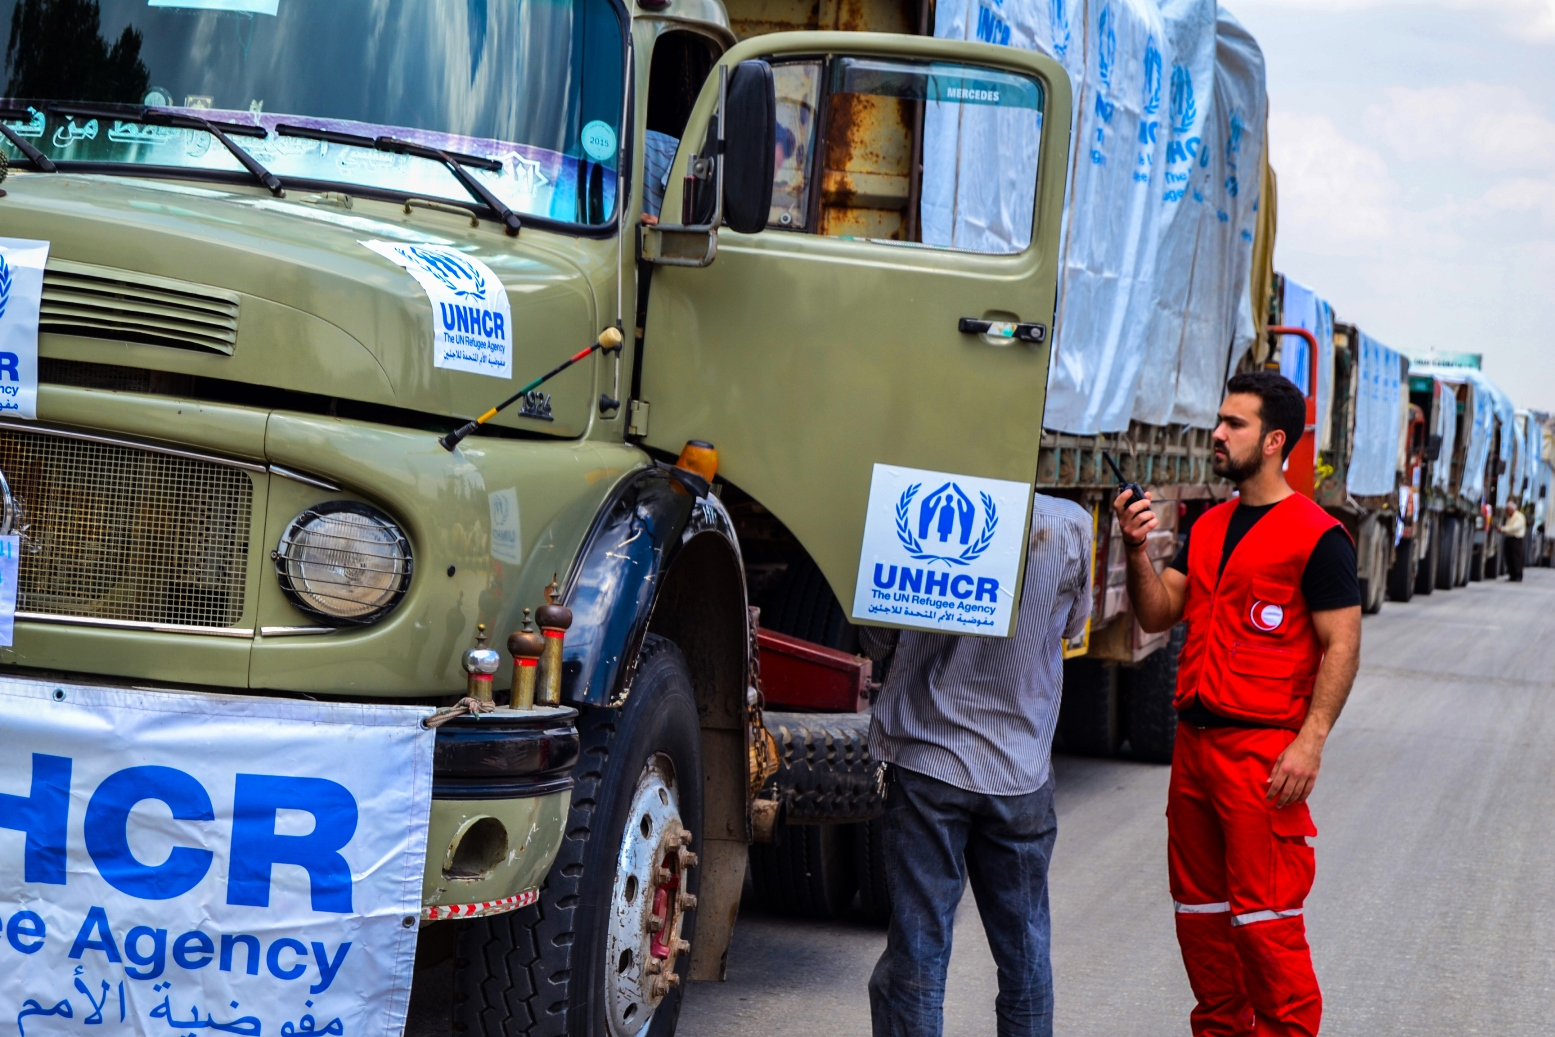 UN quietly plans to move all humanitarian aid operations for Syria to Damascus